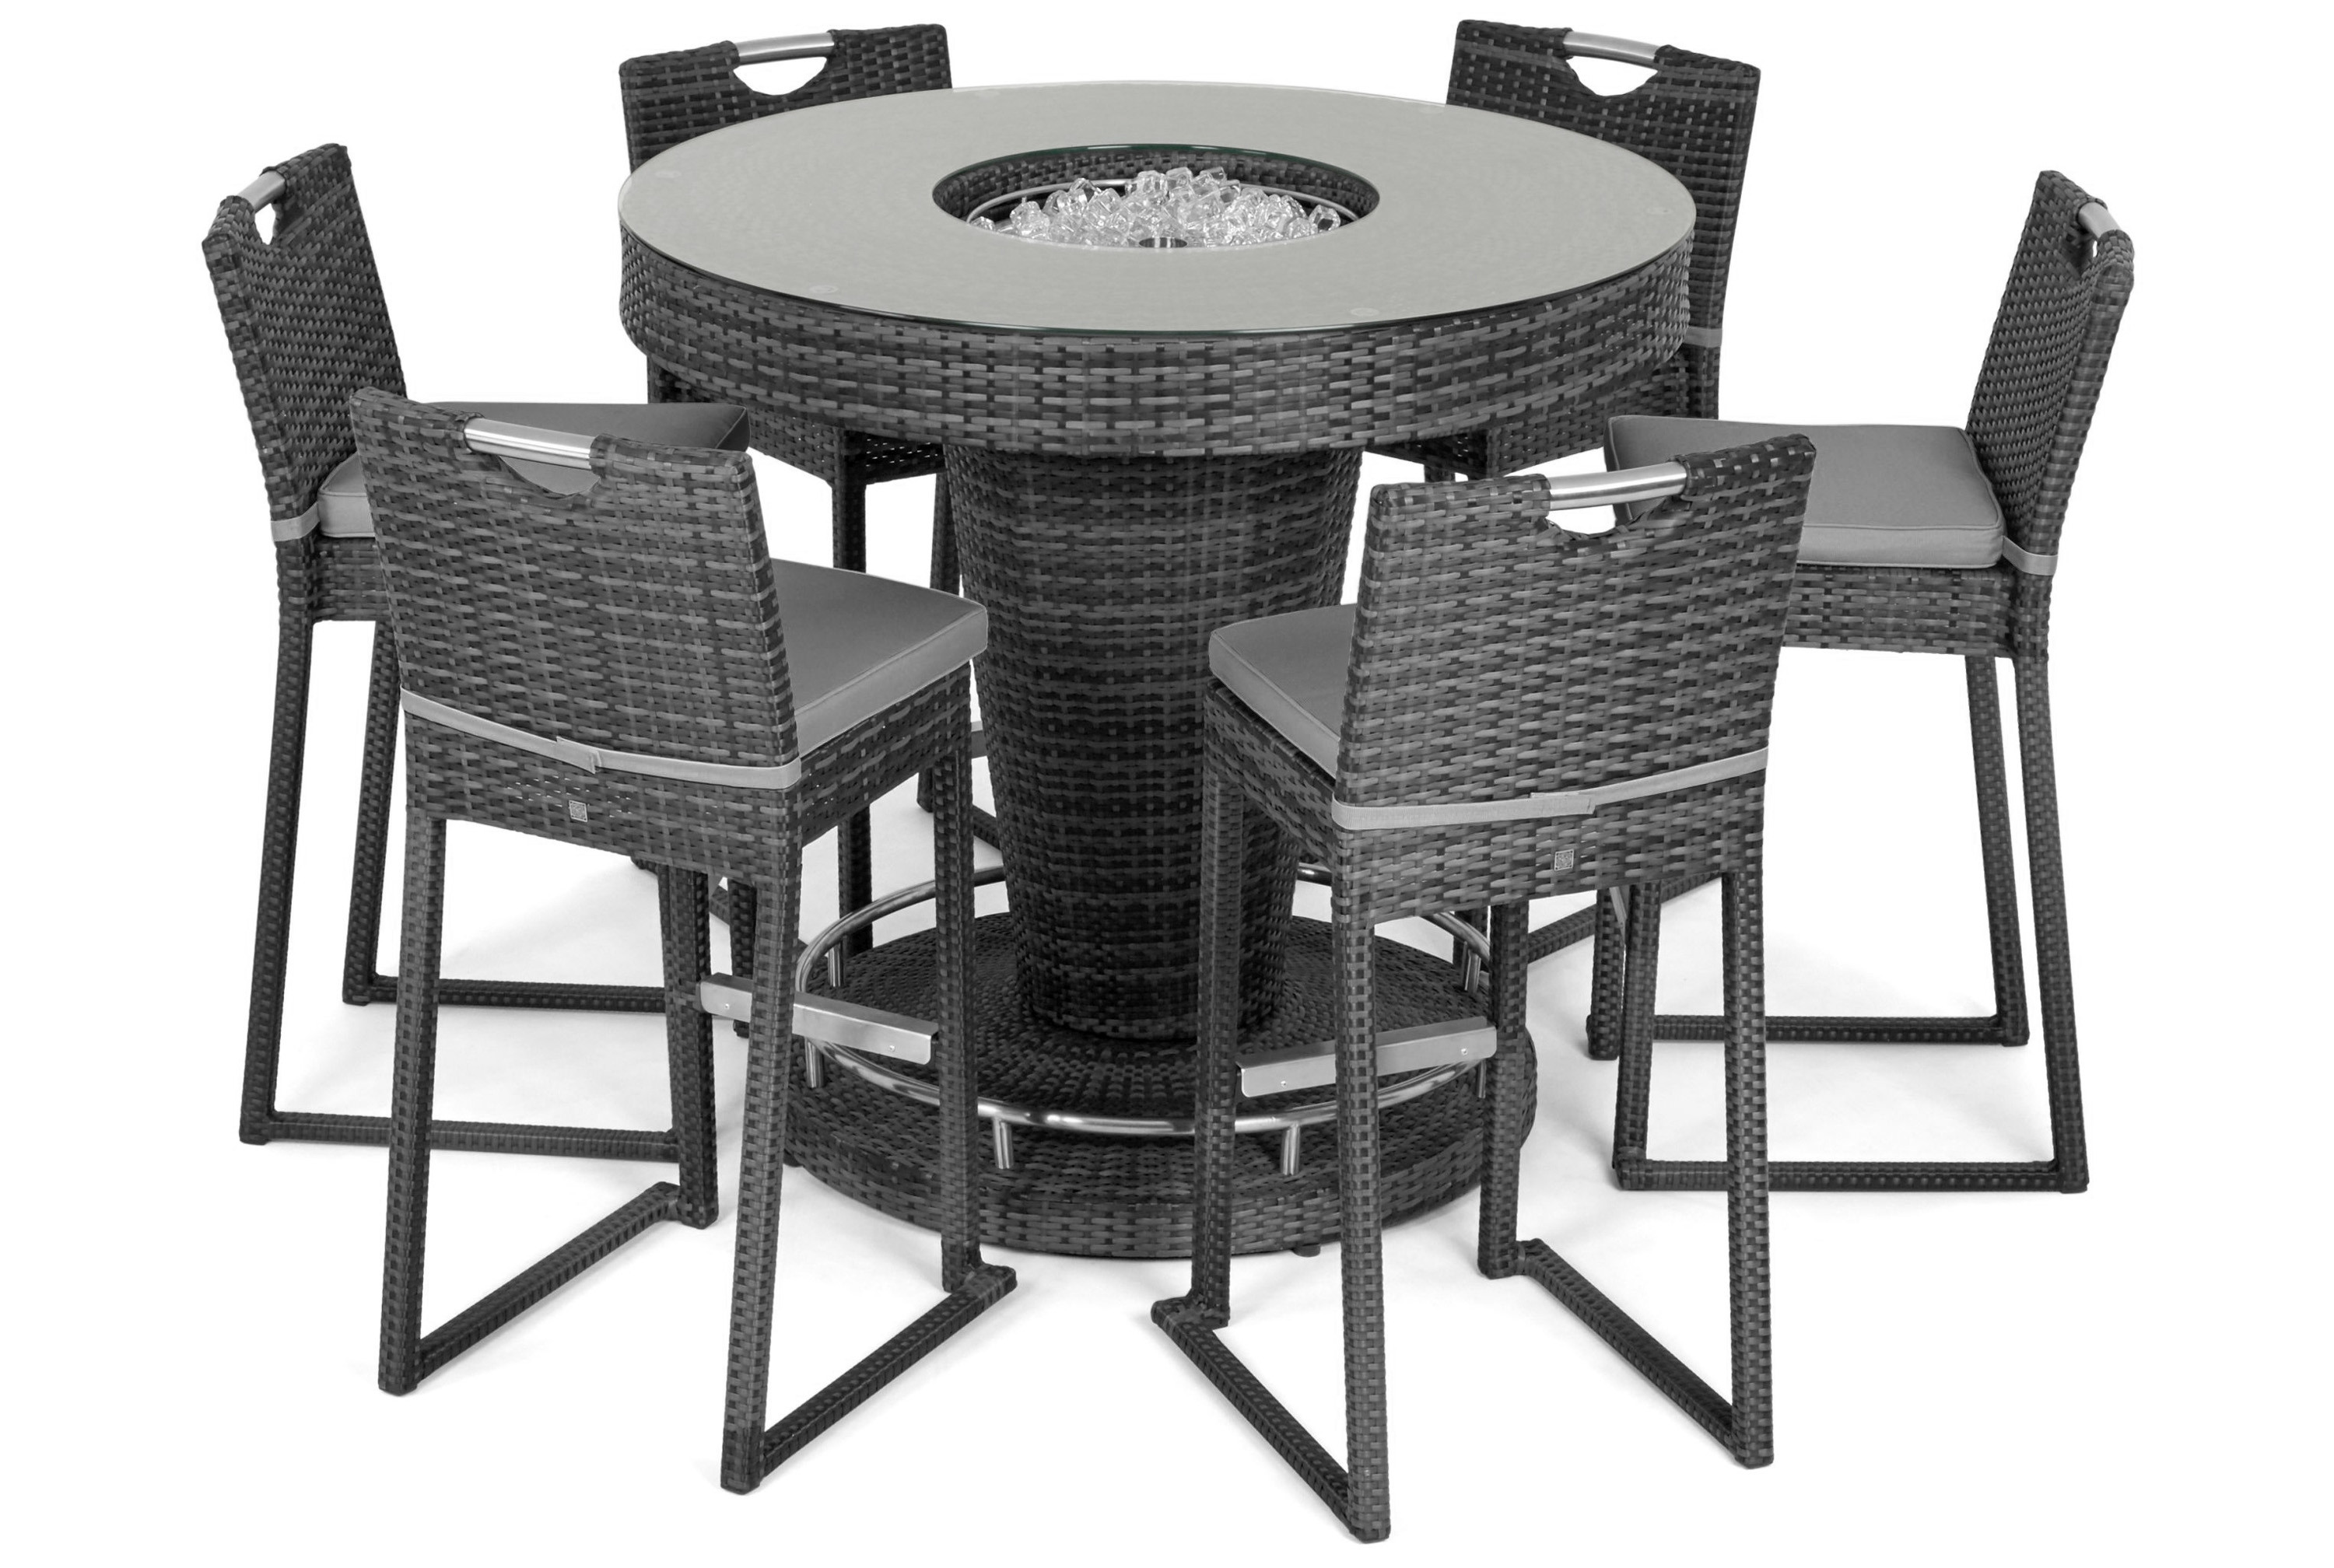 Rattan 6 Seat Bar Set With Ice Bucket Feature (Grey) *BRAND NEW*